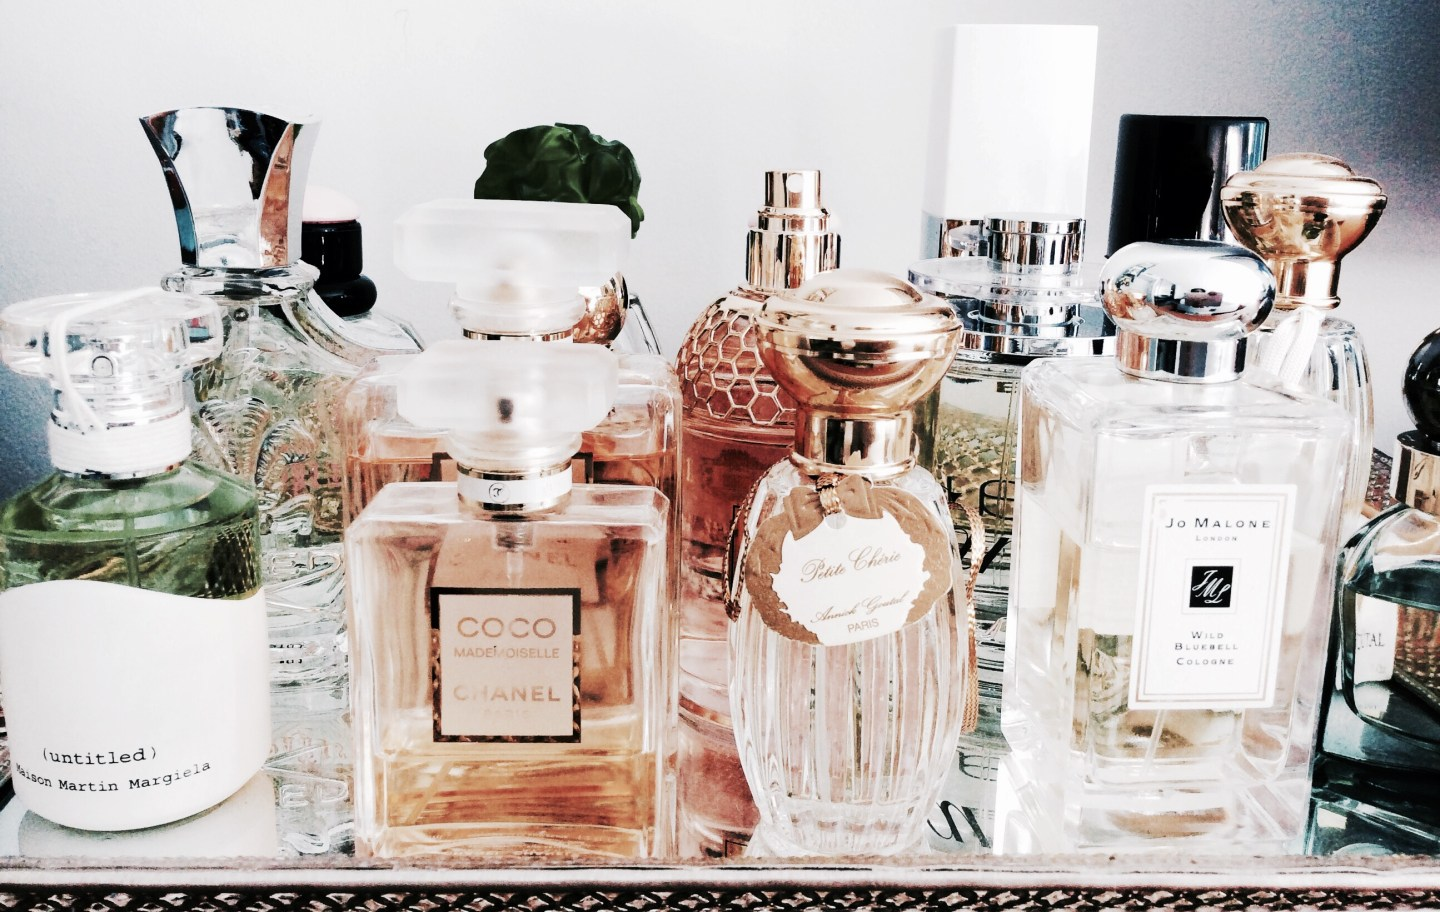 What is on your current perfume list?